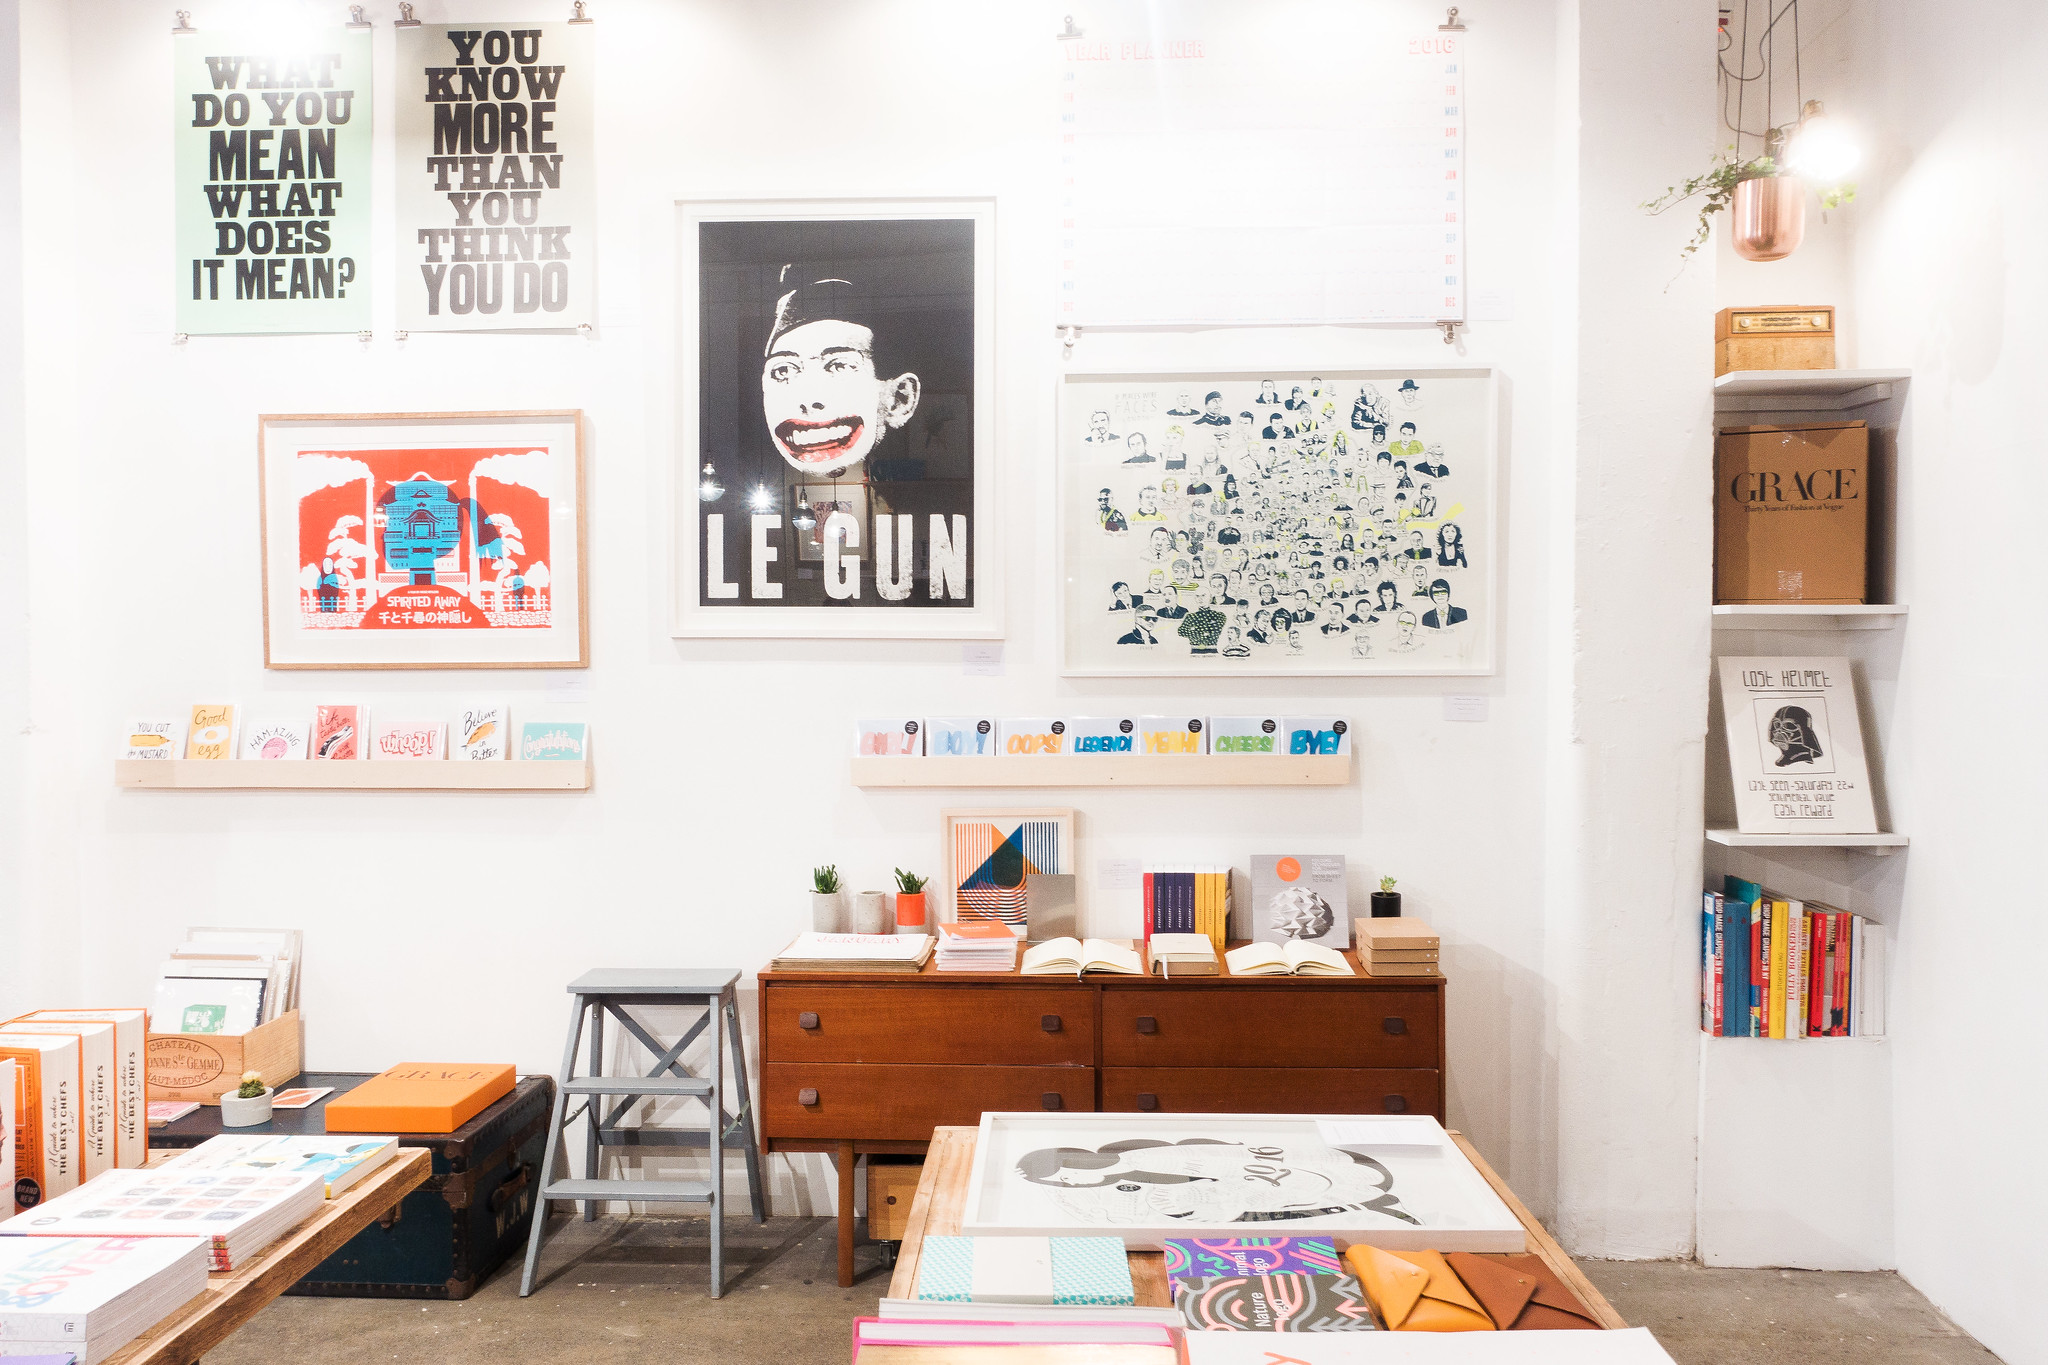 The Top 9 Independent Shops in Shoreditch, London